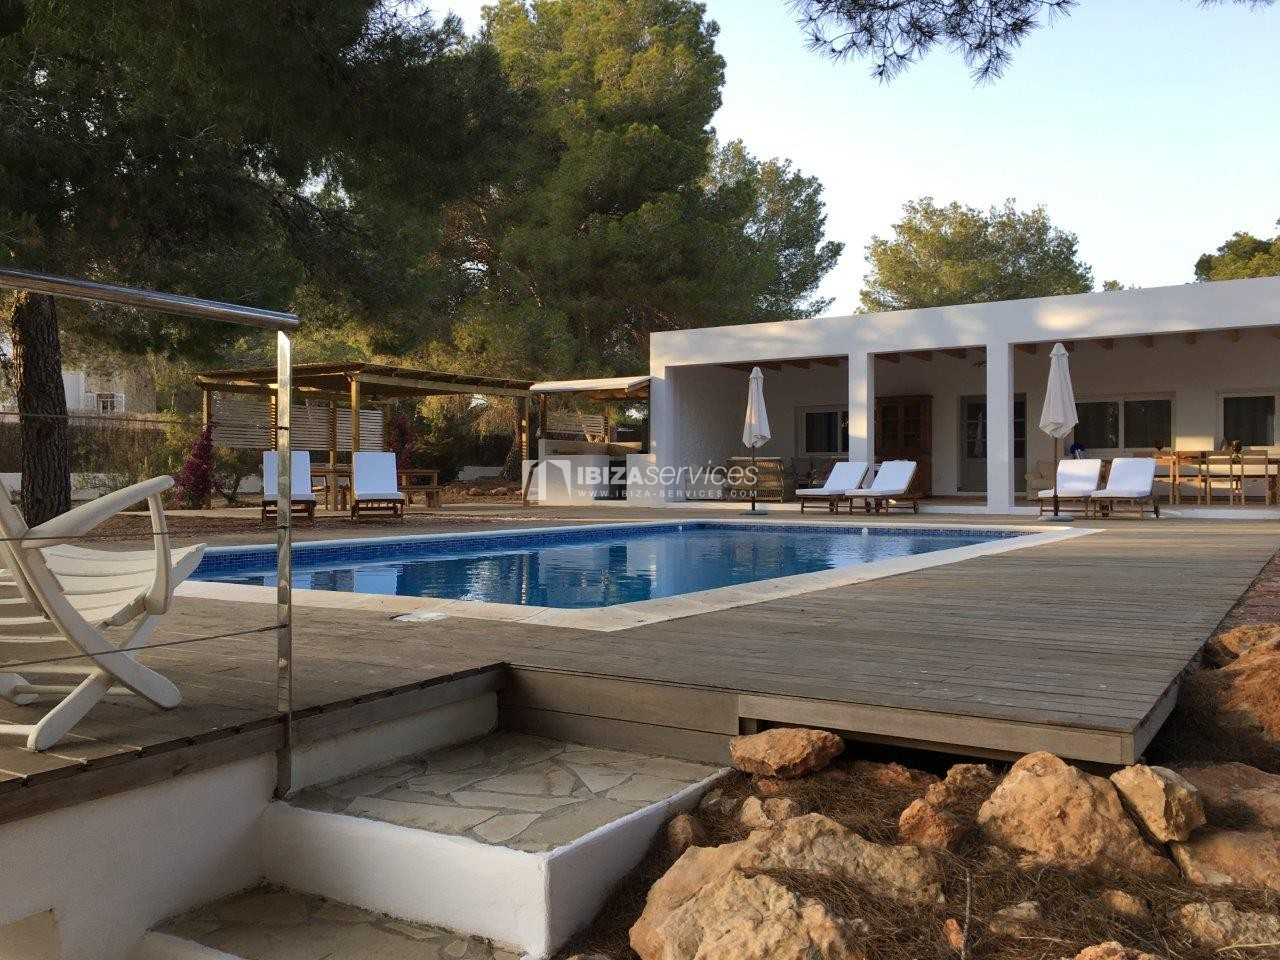 Holiday rental Cala Jondal charming villa for rent perspectiva 24